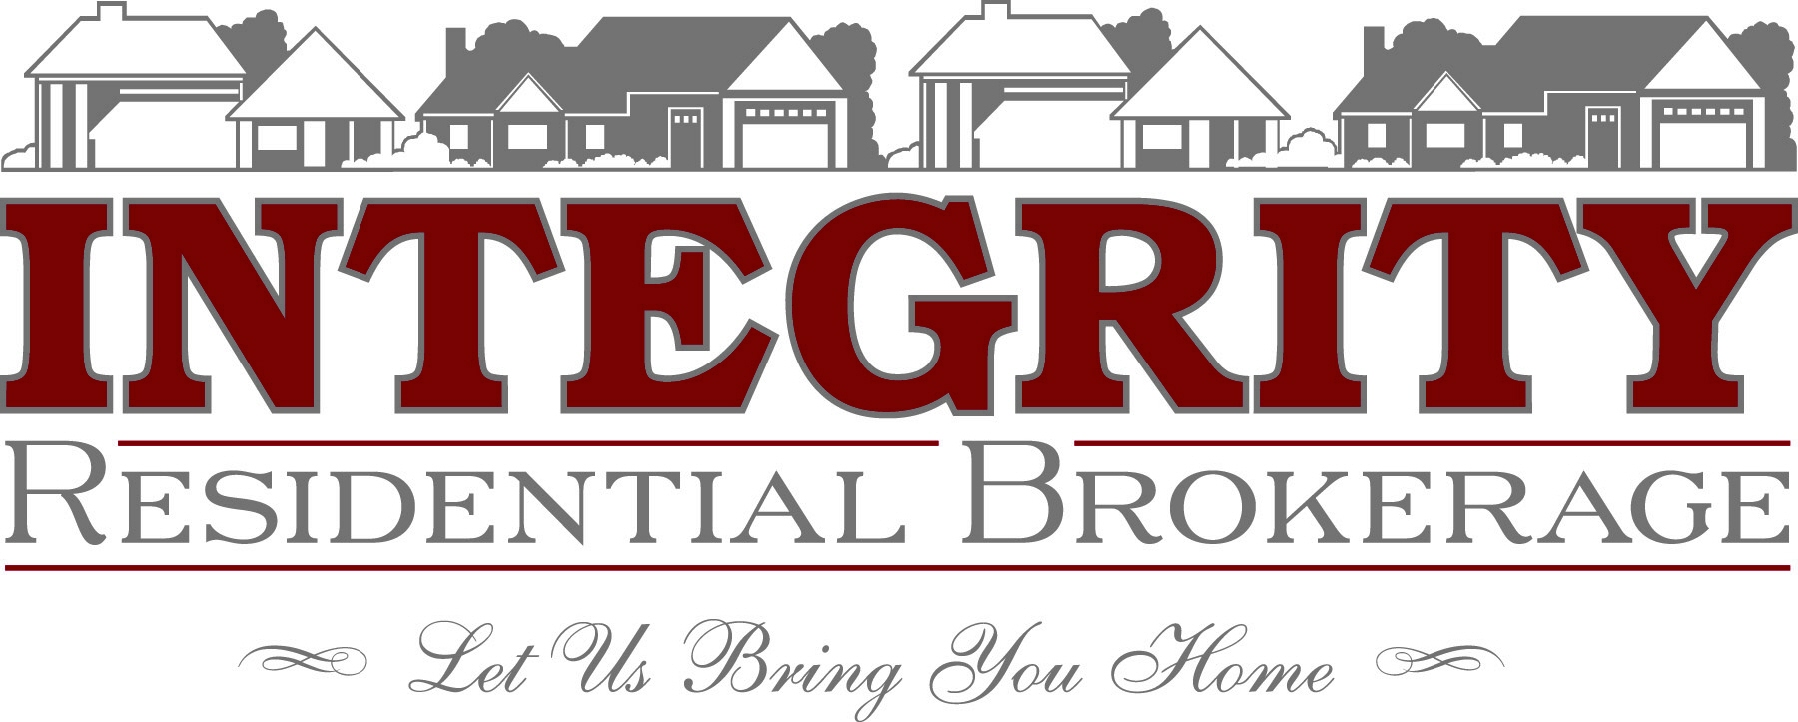 Integrity Residential Brokerage LLC